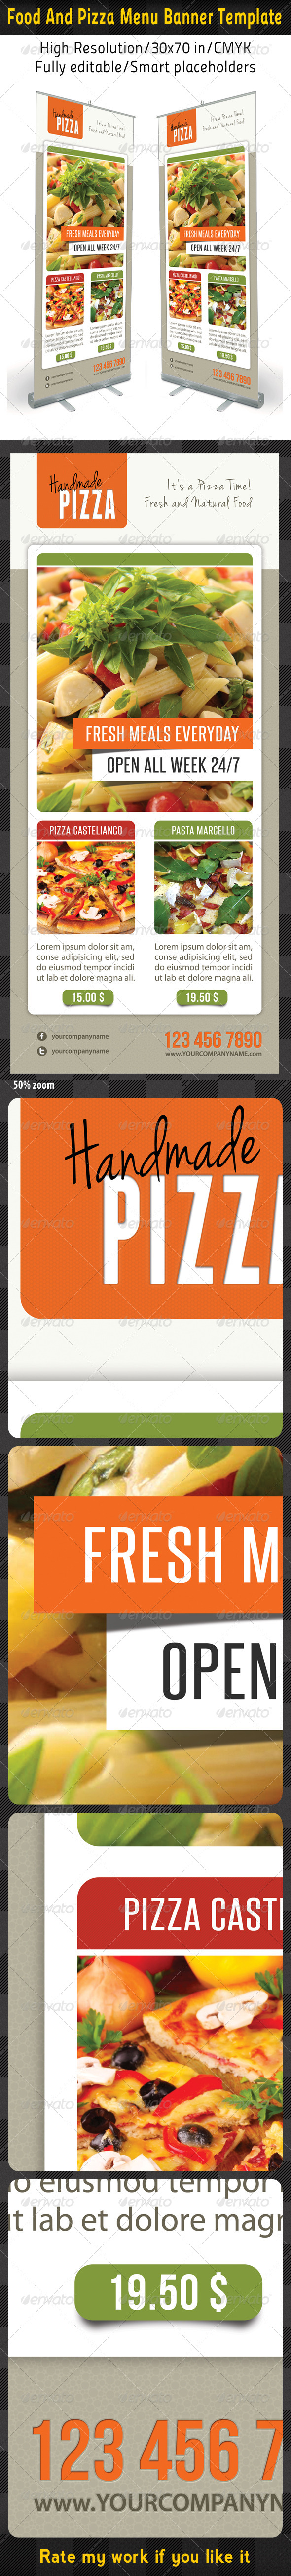 GraphicRiver Food And Pizza Menu Banner Template 05 6069331